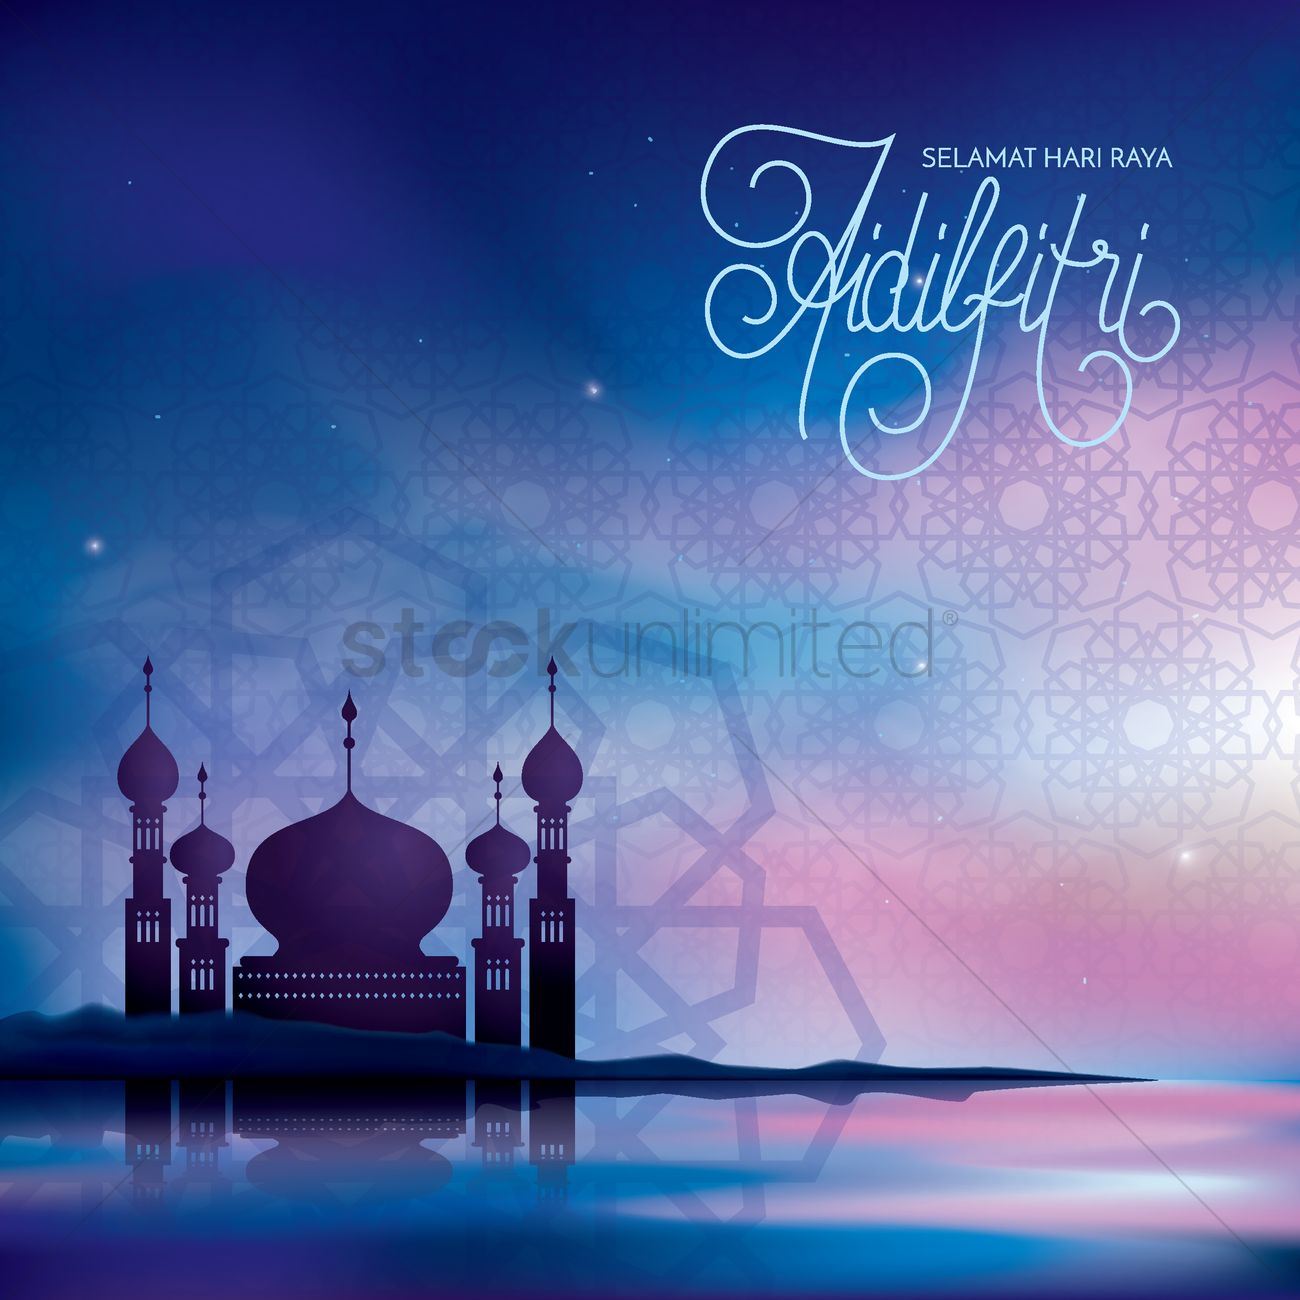 Selamat Hari Raya Greeting Vector Image 1828199 Stockunlimited